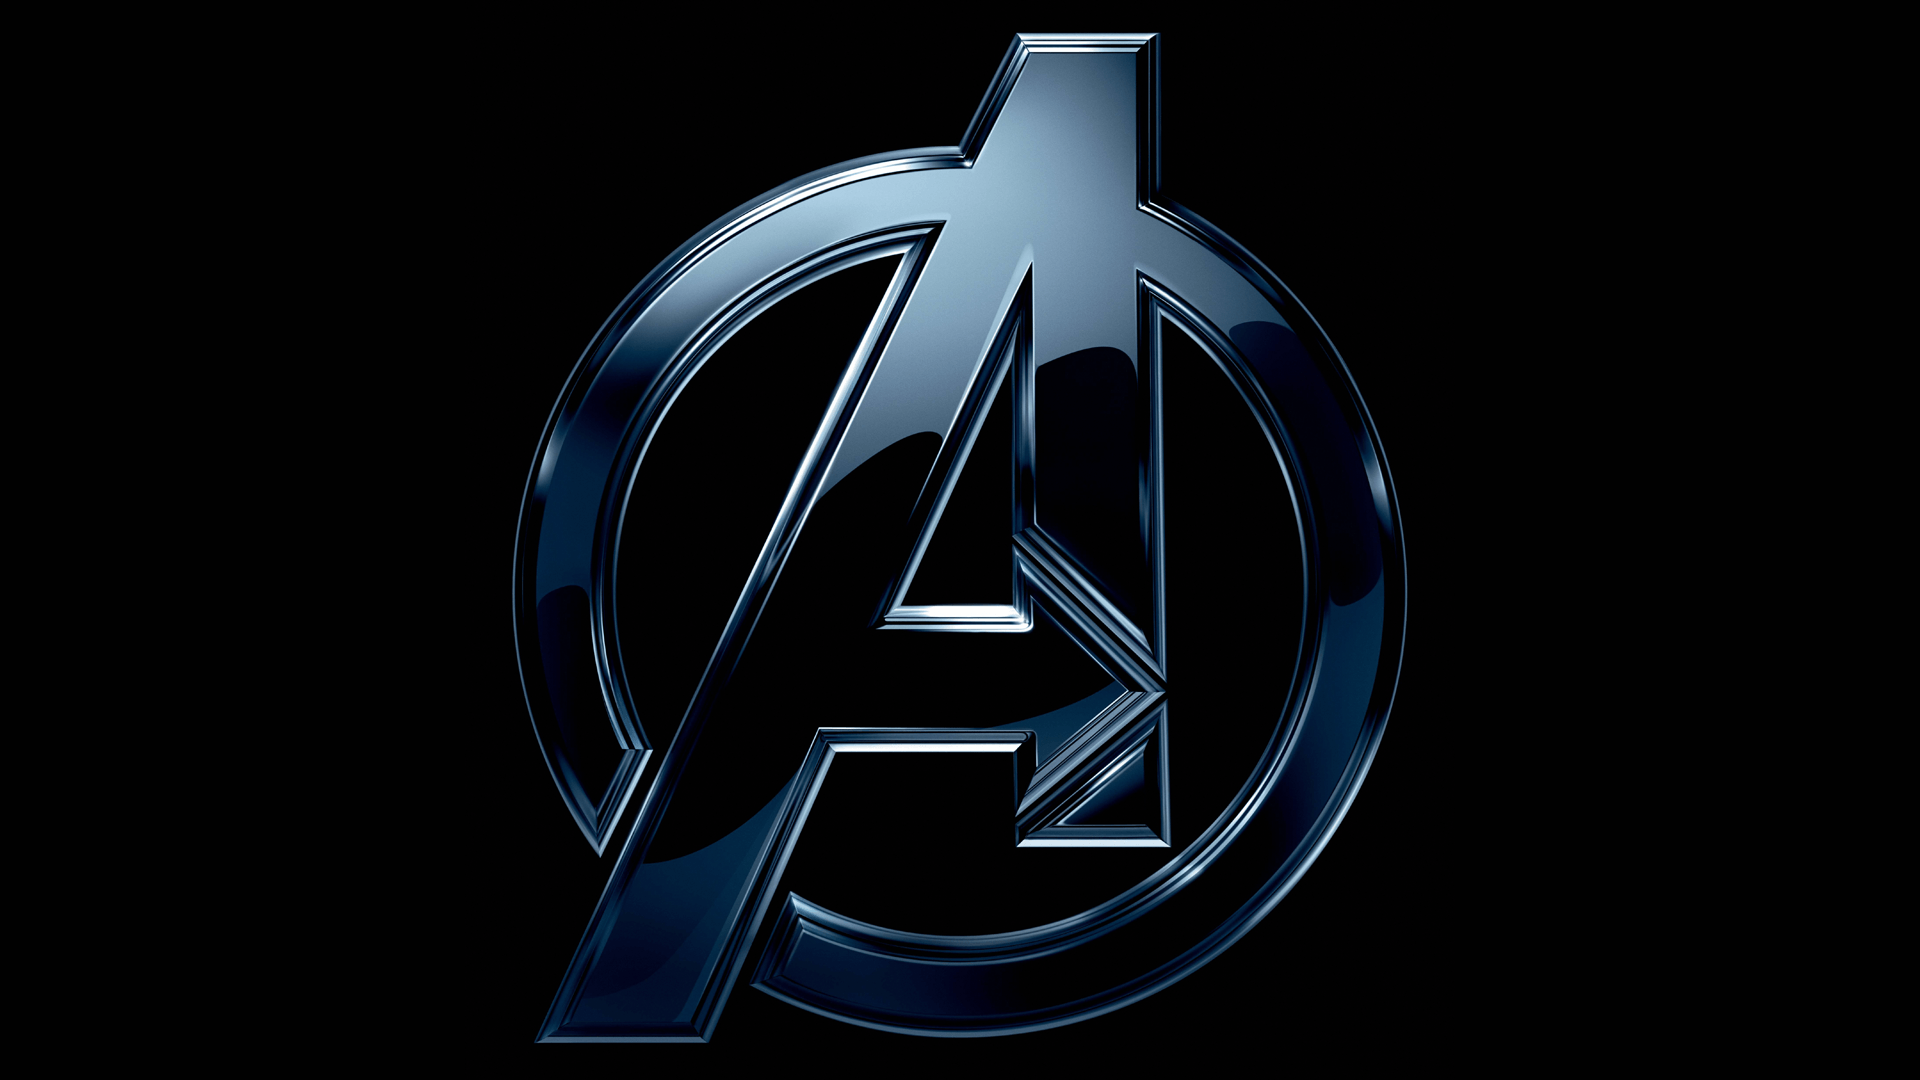 avengers comic logo wallpaper - photo #15